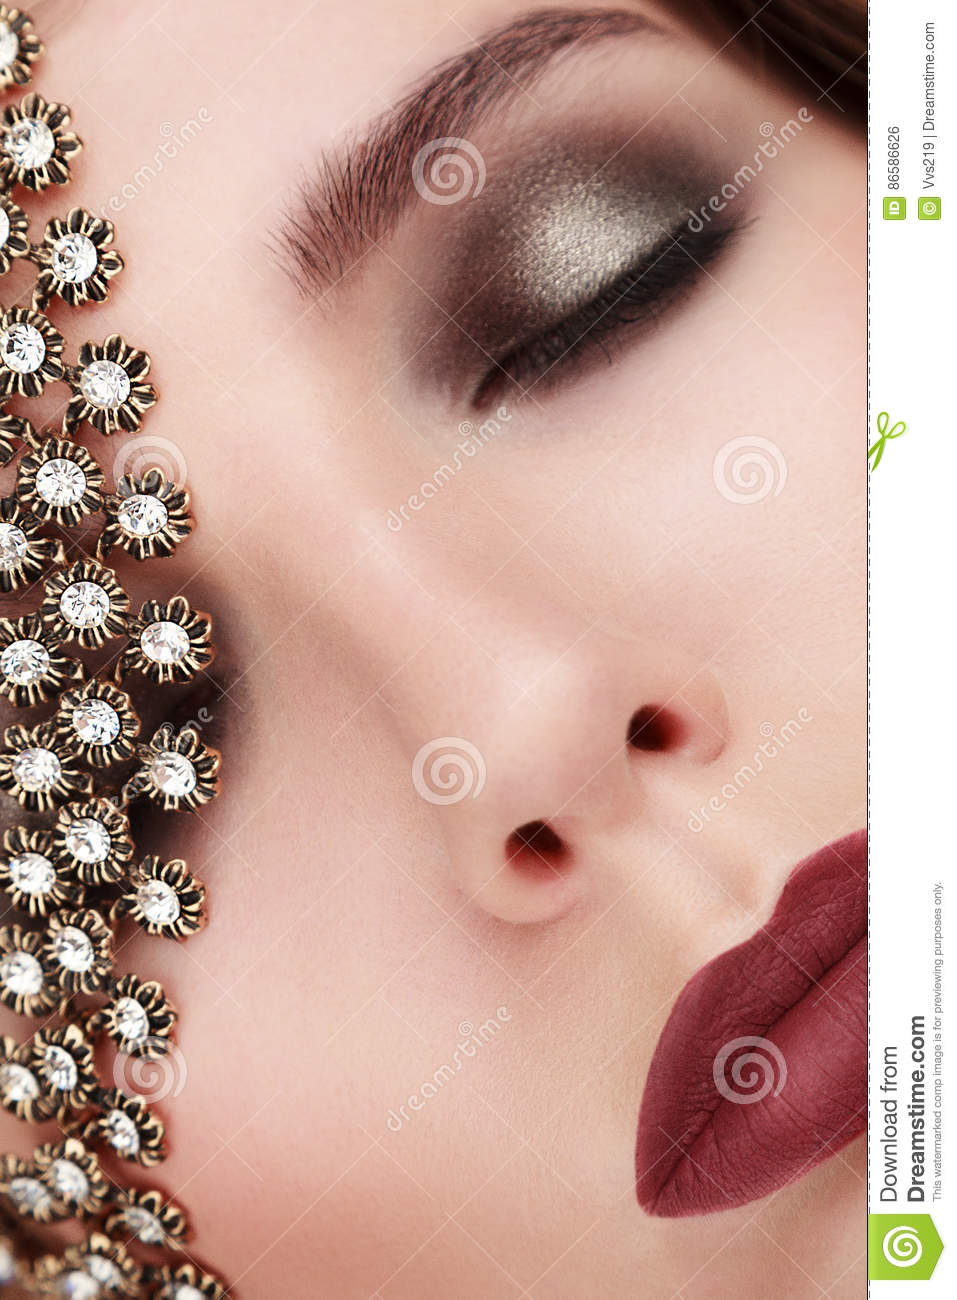 Closeup beauty portrait of young woman with jewelry Add noise